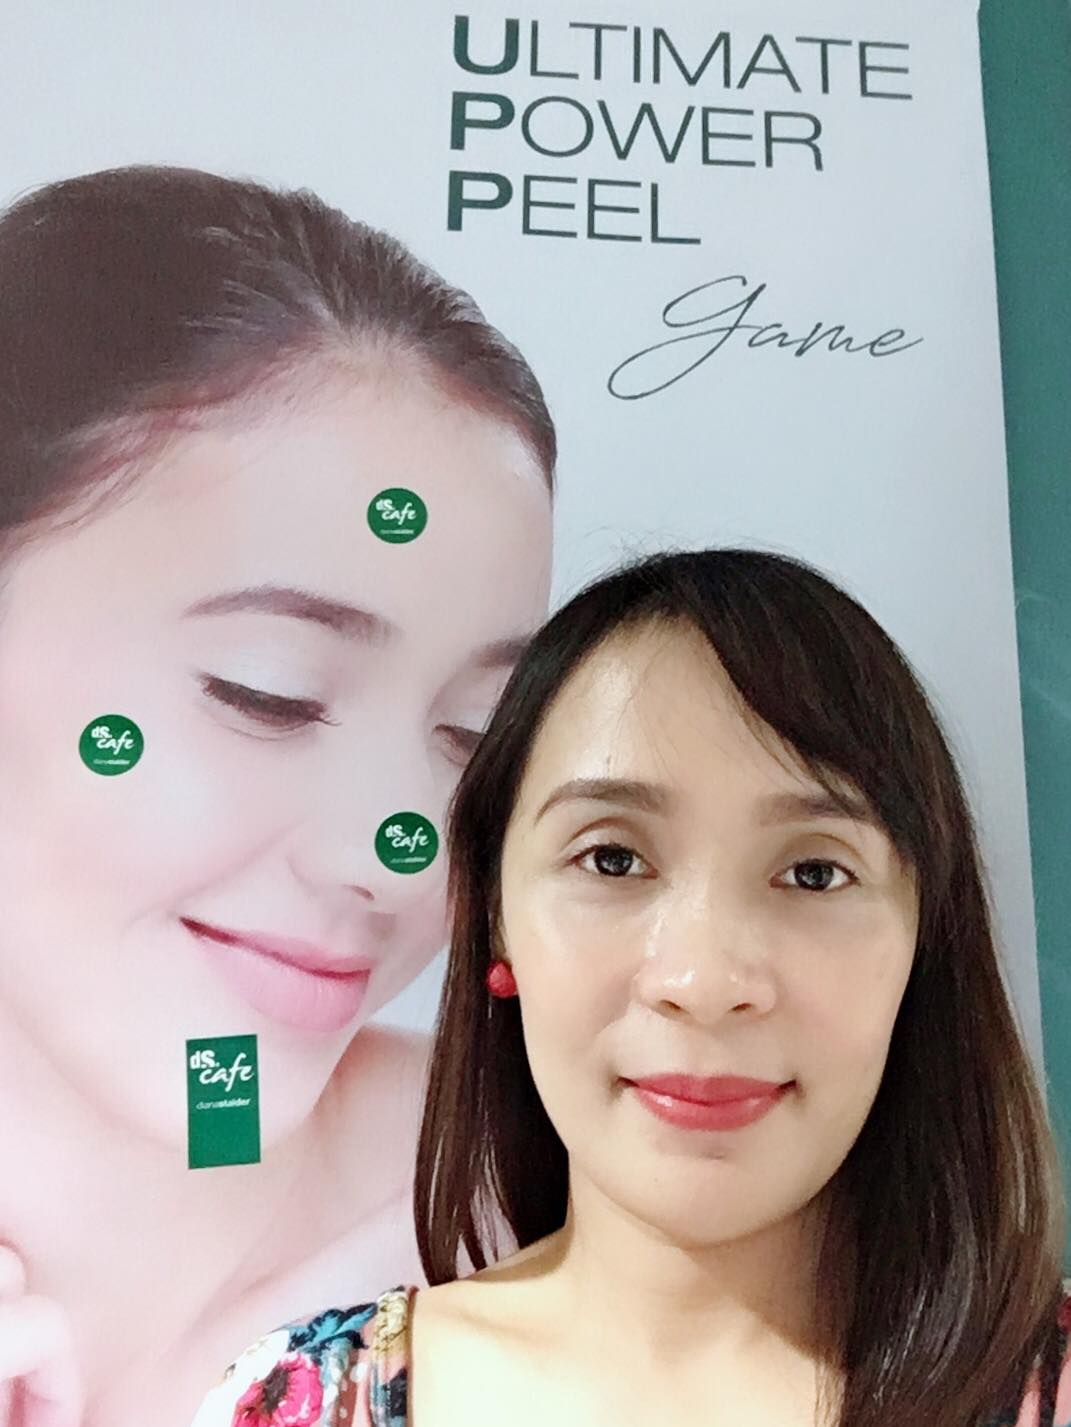 Diana Stalder Ultimate Power Peel